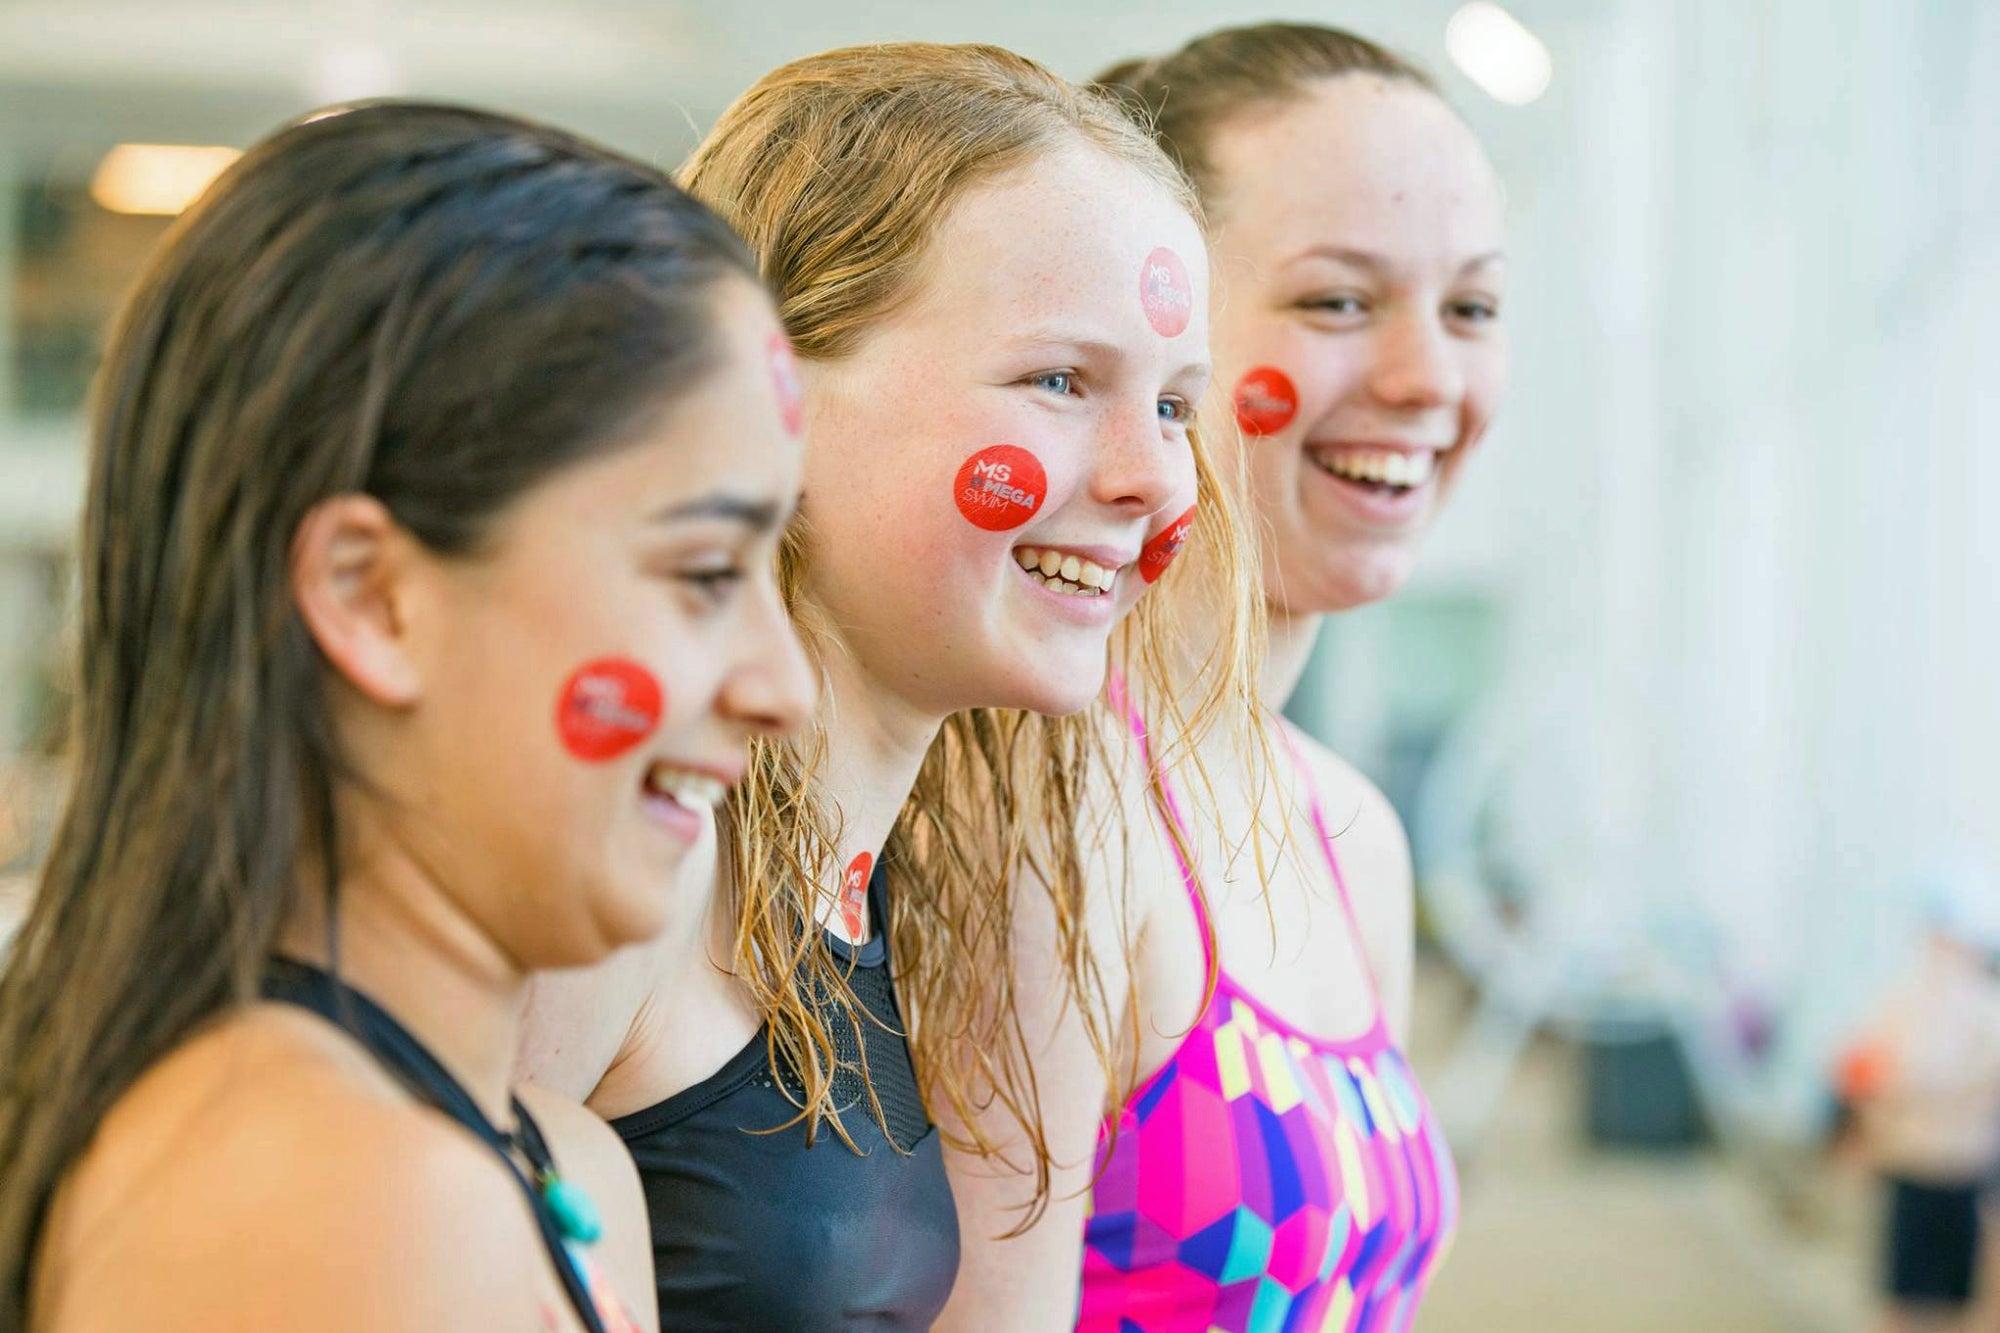 3 young women smiling as they are about to enter the pool